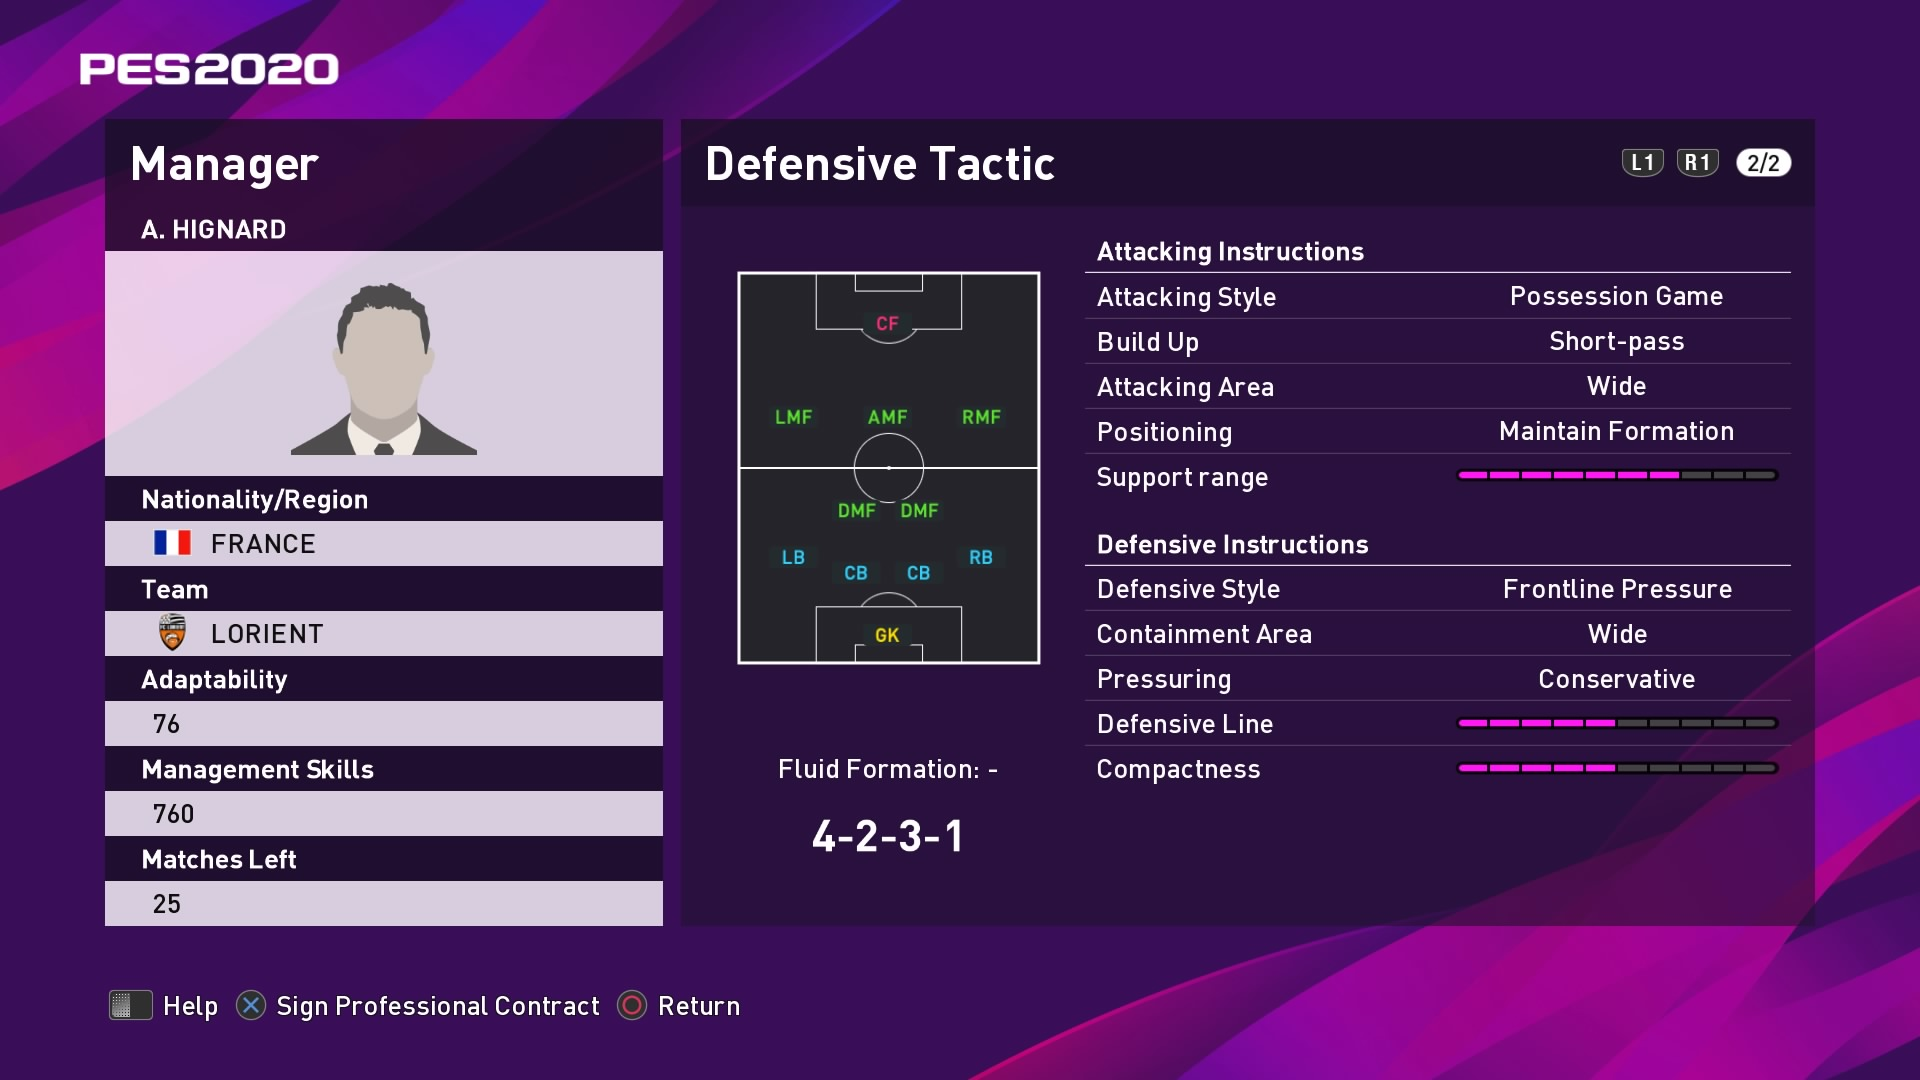 A. Hignard (Christophe Pélissier) Defensive Tactic in PES 2020 myClub